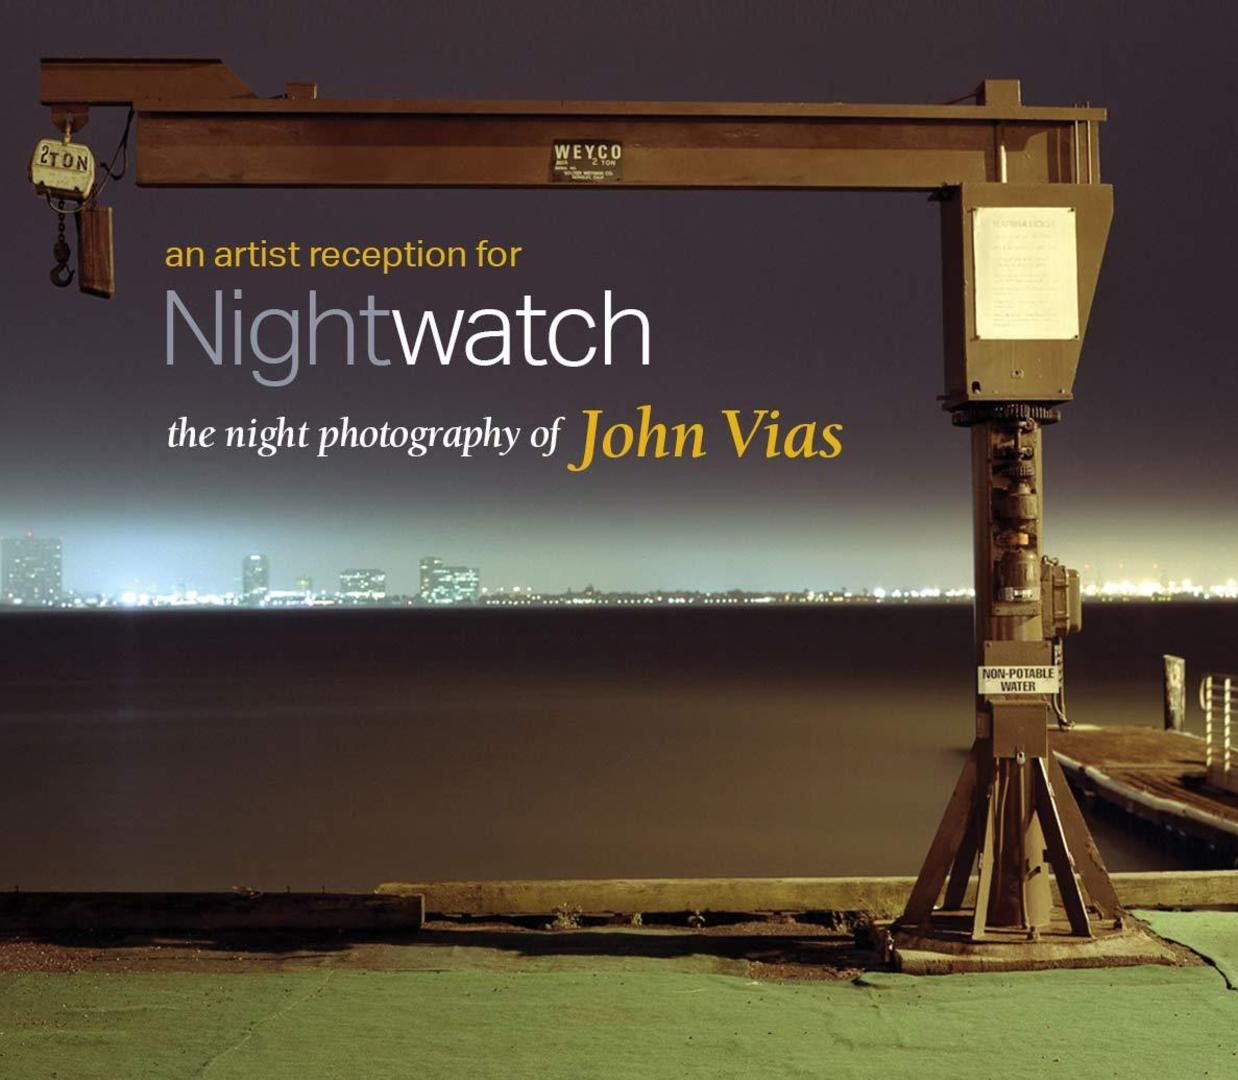 Nightwatch exhibition